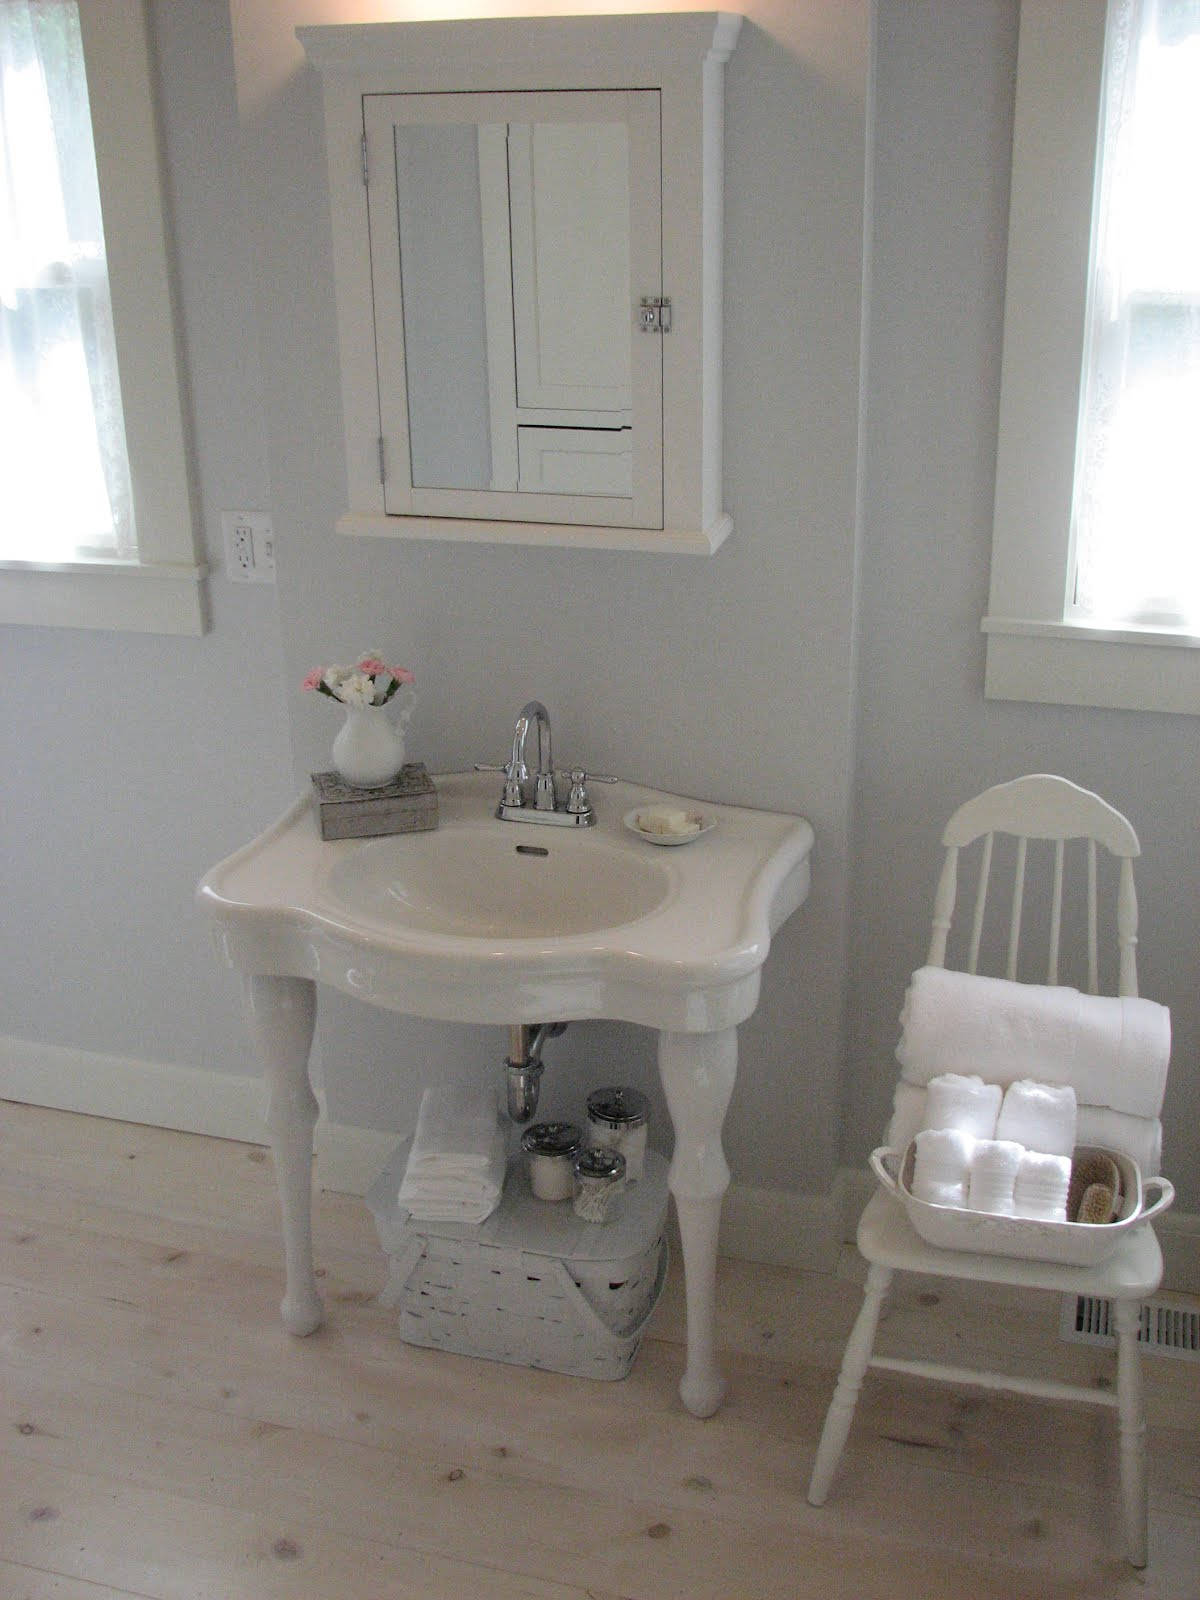 The charm of vintage bathrooms from 1940s interior design - Charm Of Vintage Bathrooms From 1940s Interior Design Inspirations